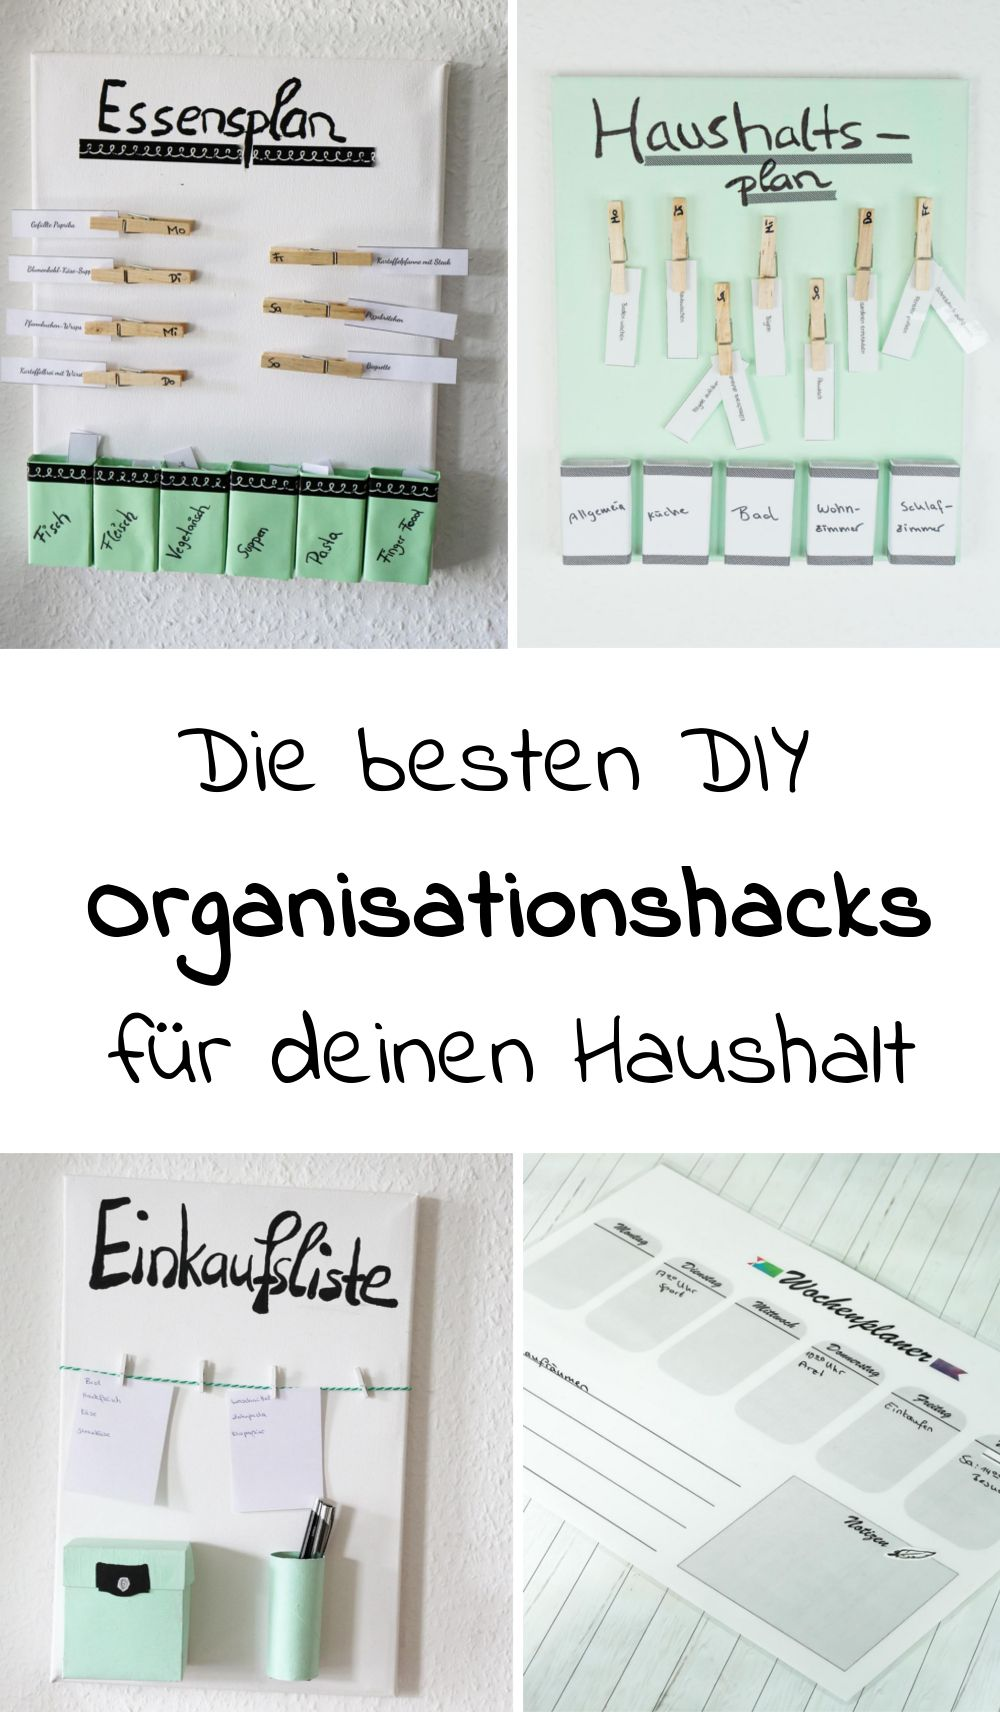 diy organisationhacks f r deinen haushalt mit diesen coolen diy ideen zum thema haushalt kannst. Black Bedroom Furniture Sets. Home Design Ideas